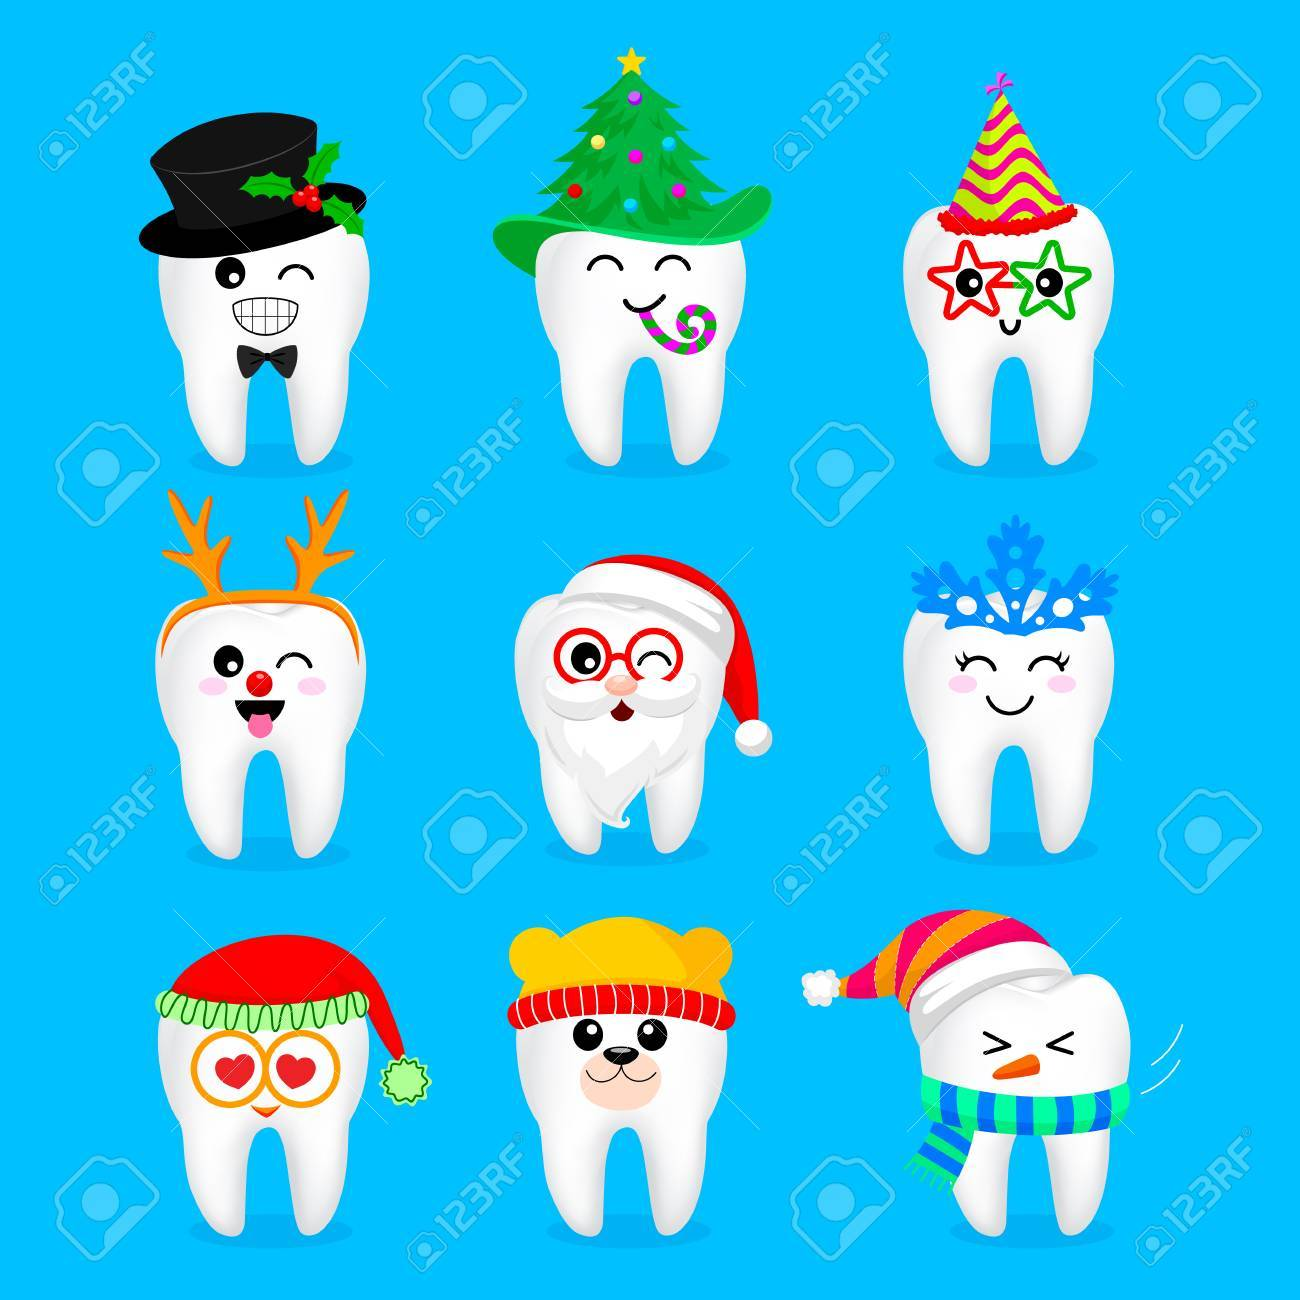 Set of Chrismas and New year tooth characters. Emoticons with different facial expressions. Funny dental care concept. Illustration isolated on blue background. - 88270721